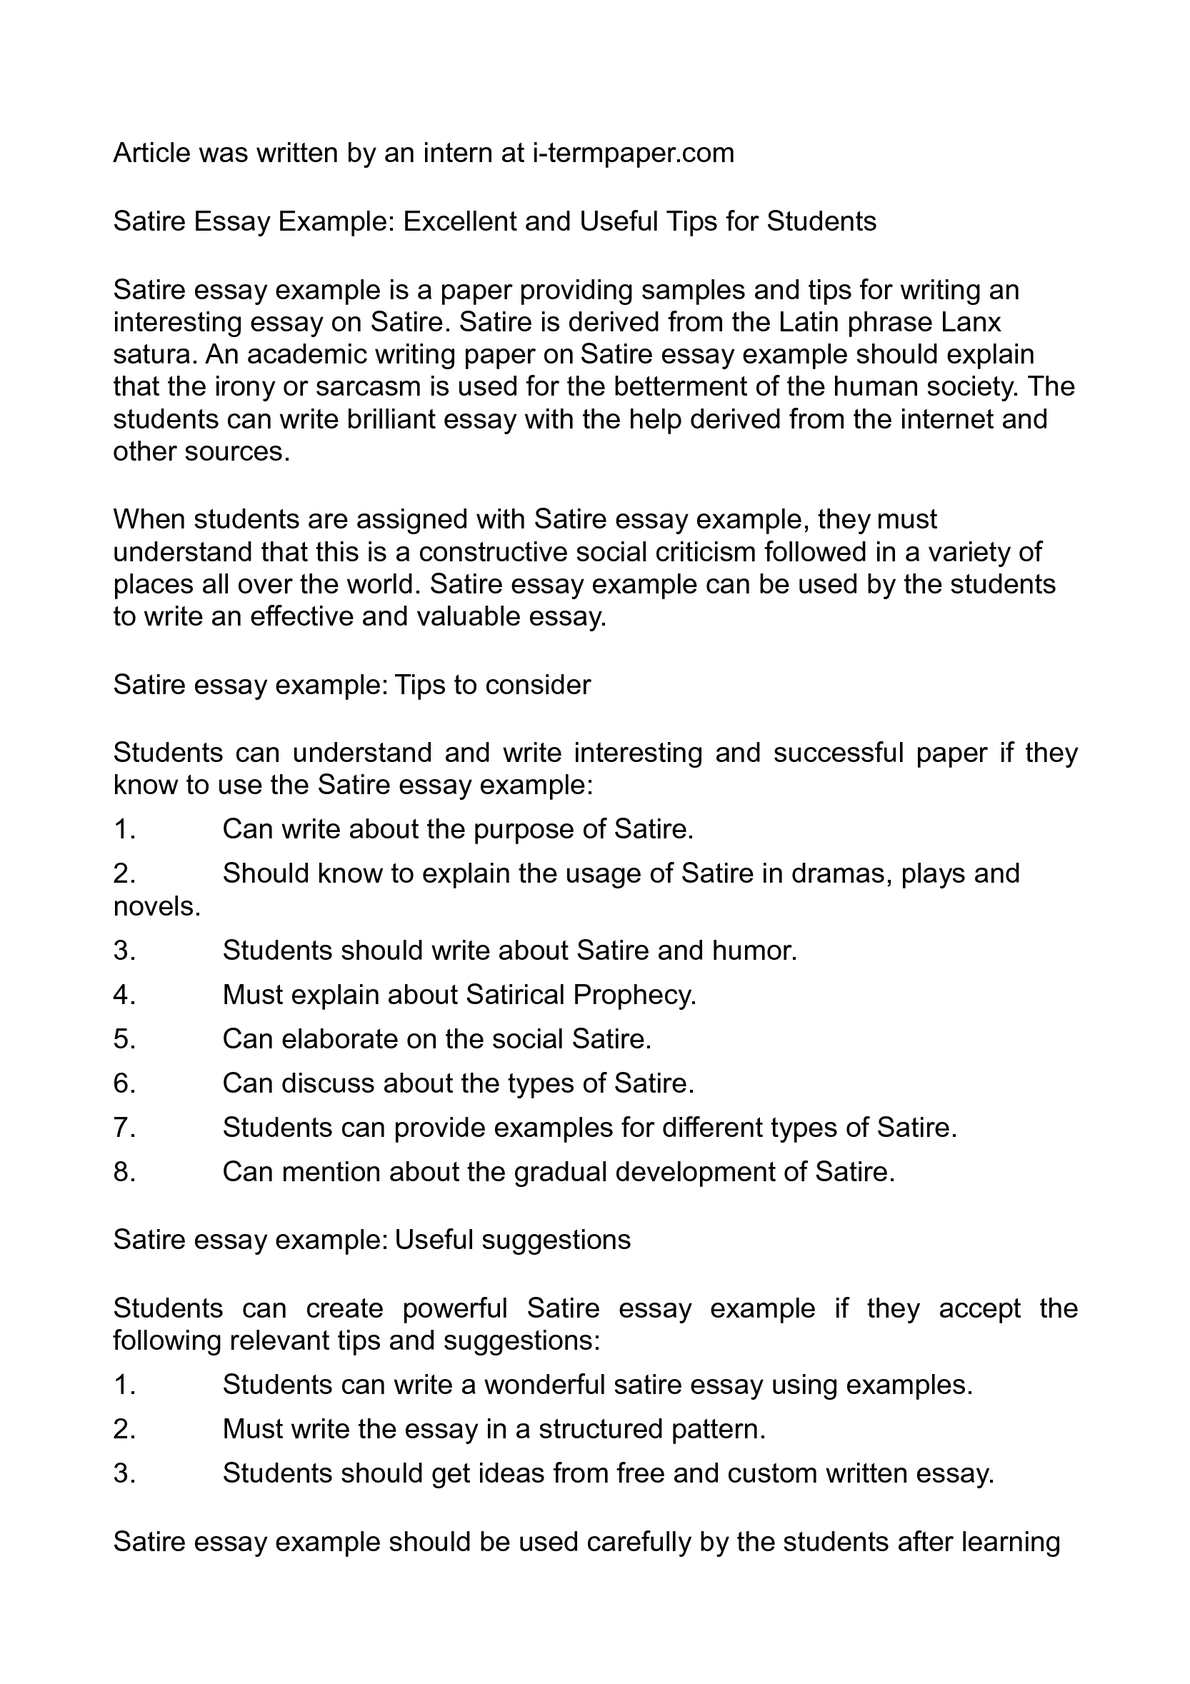 satire essay topics satirical essay topics gxart example of satirical essay topics gxart orgexamples of satire